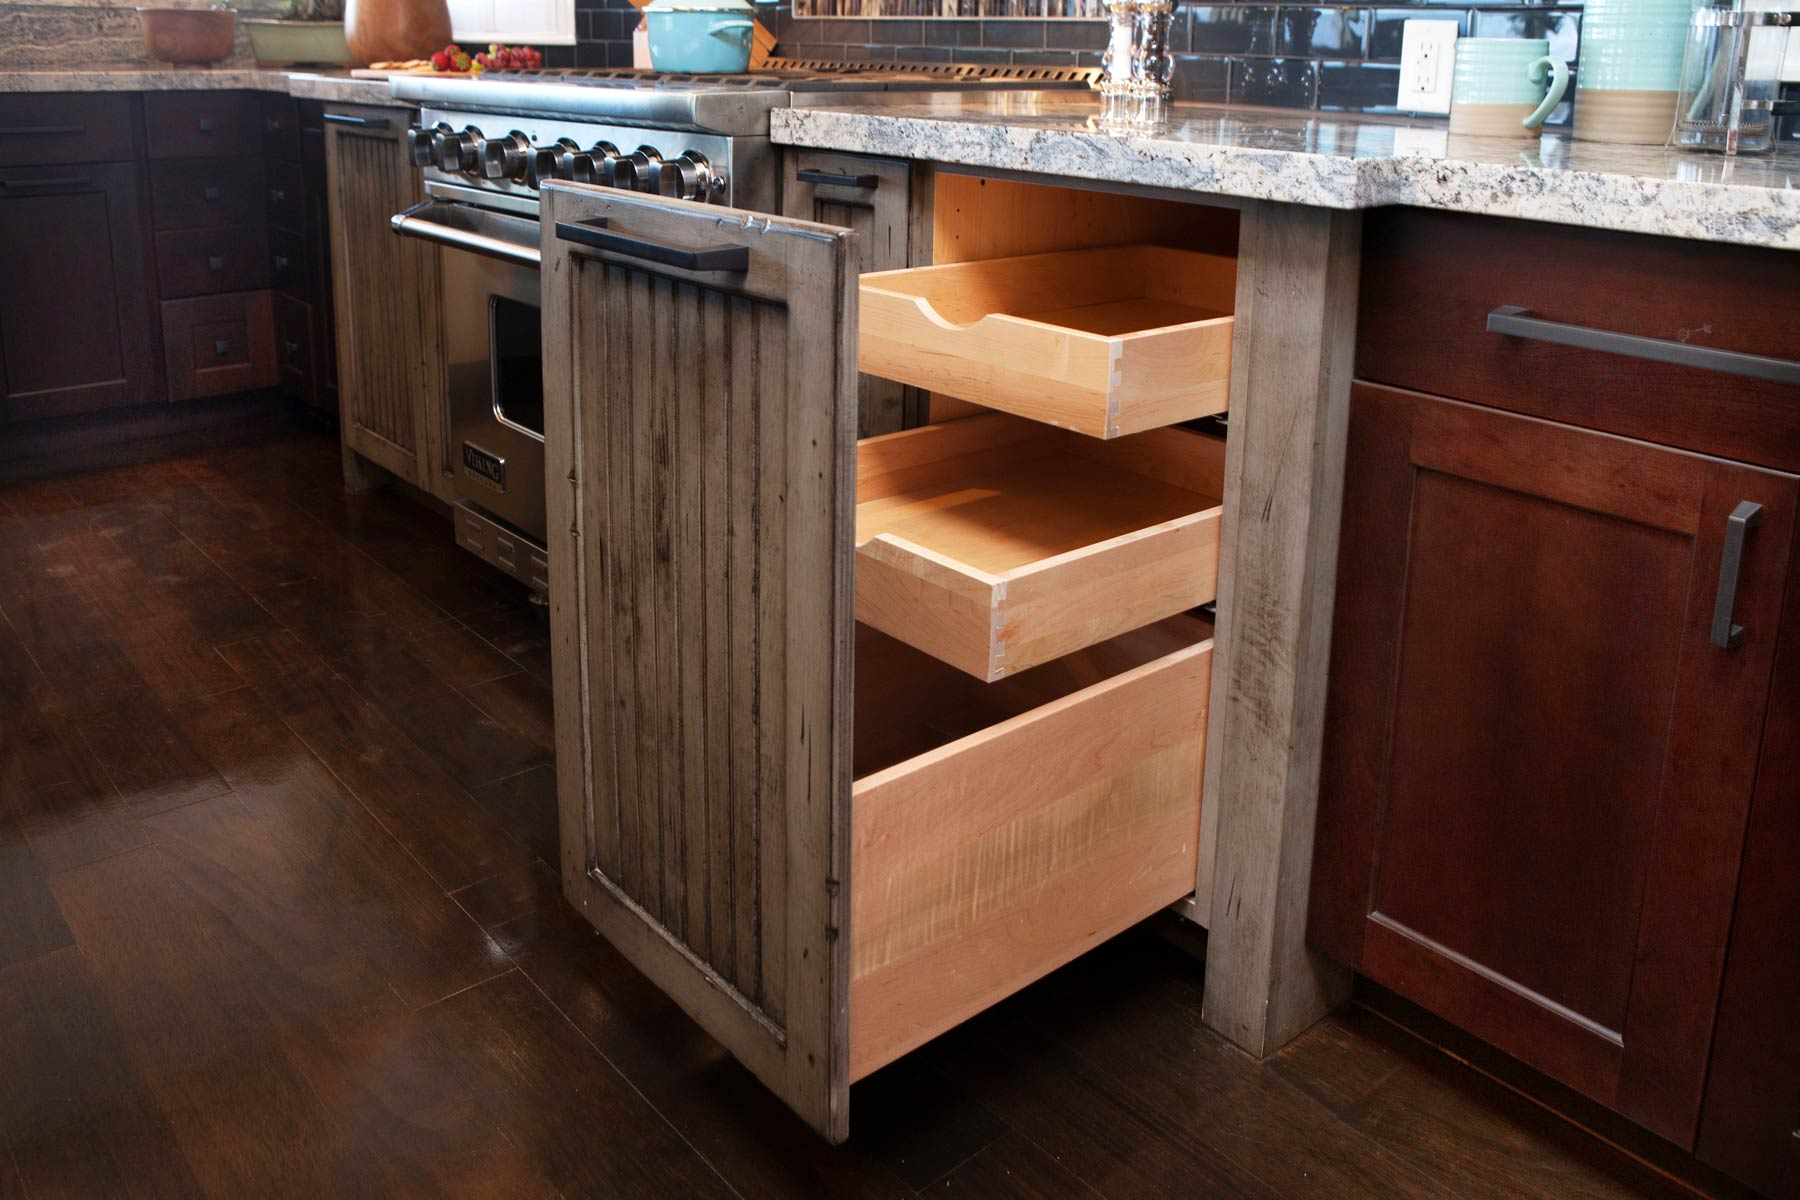 Pull-out drawers in new Hawaii kitchen remodel